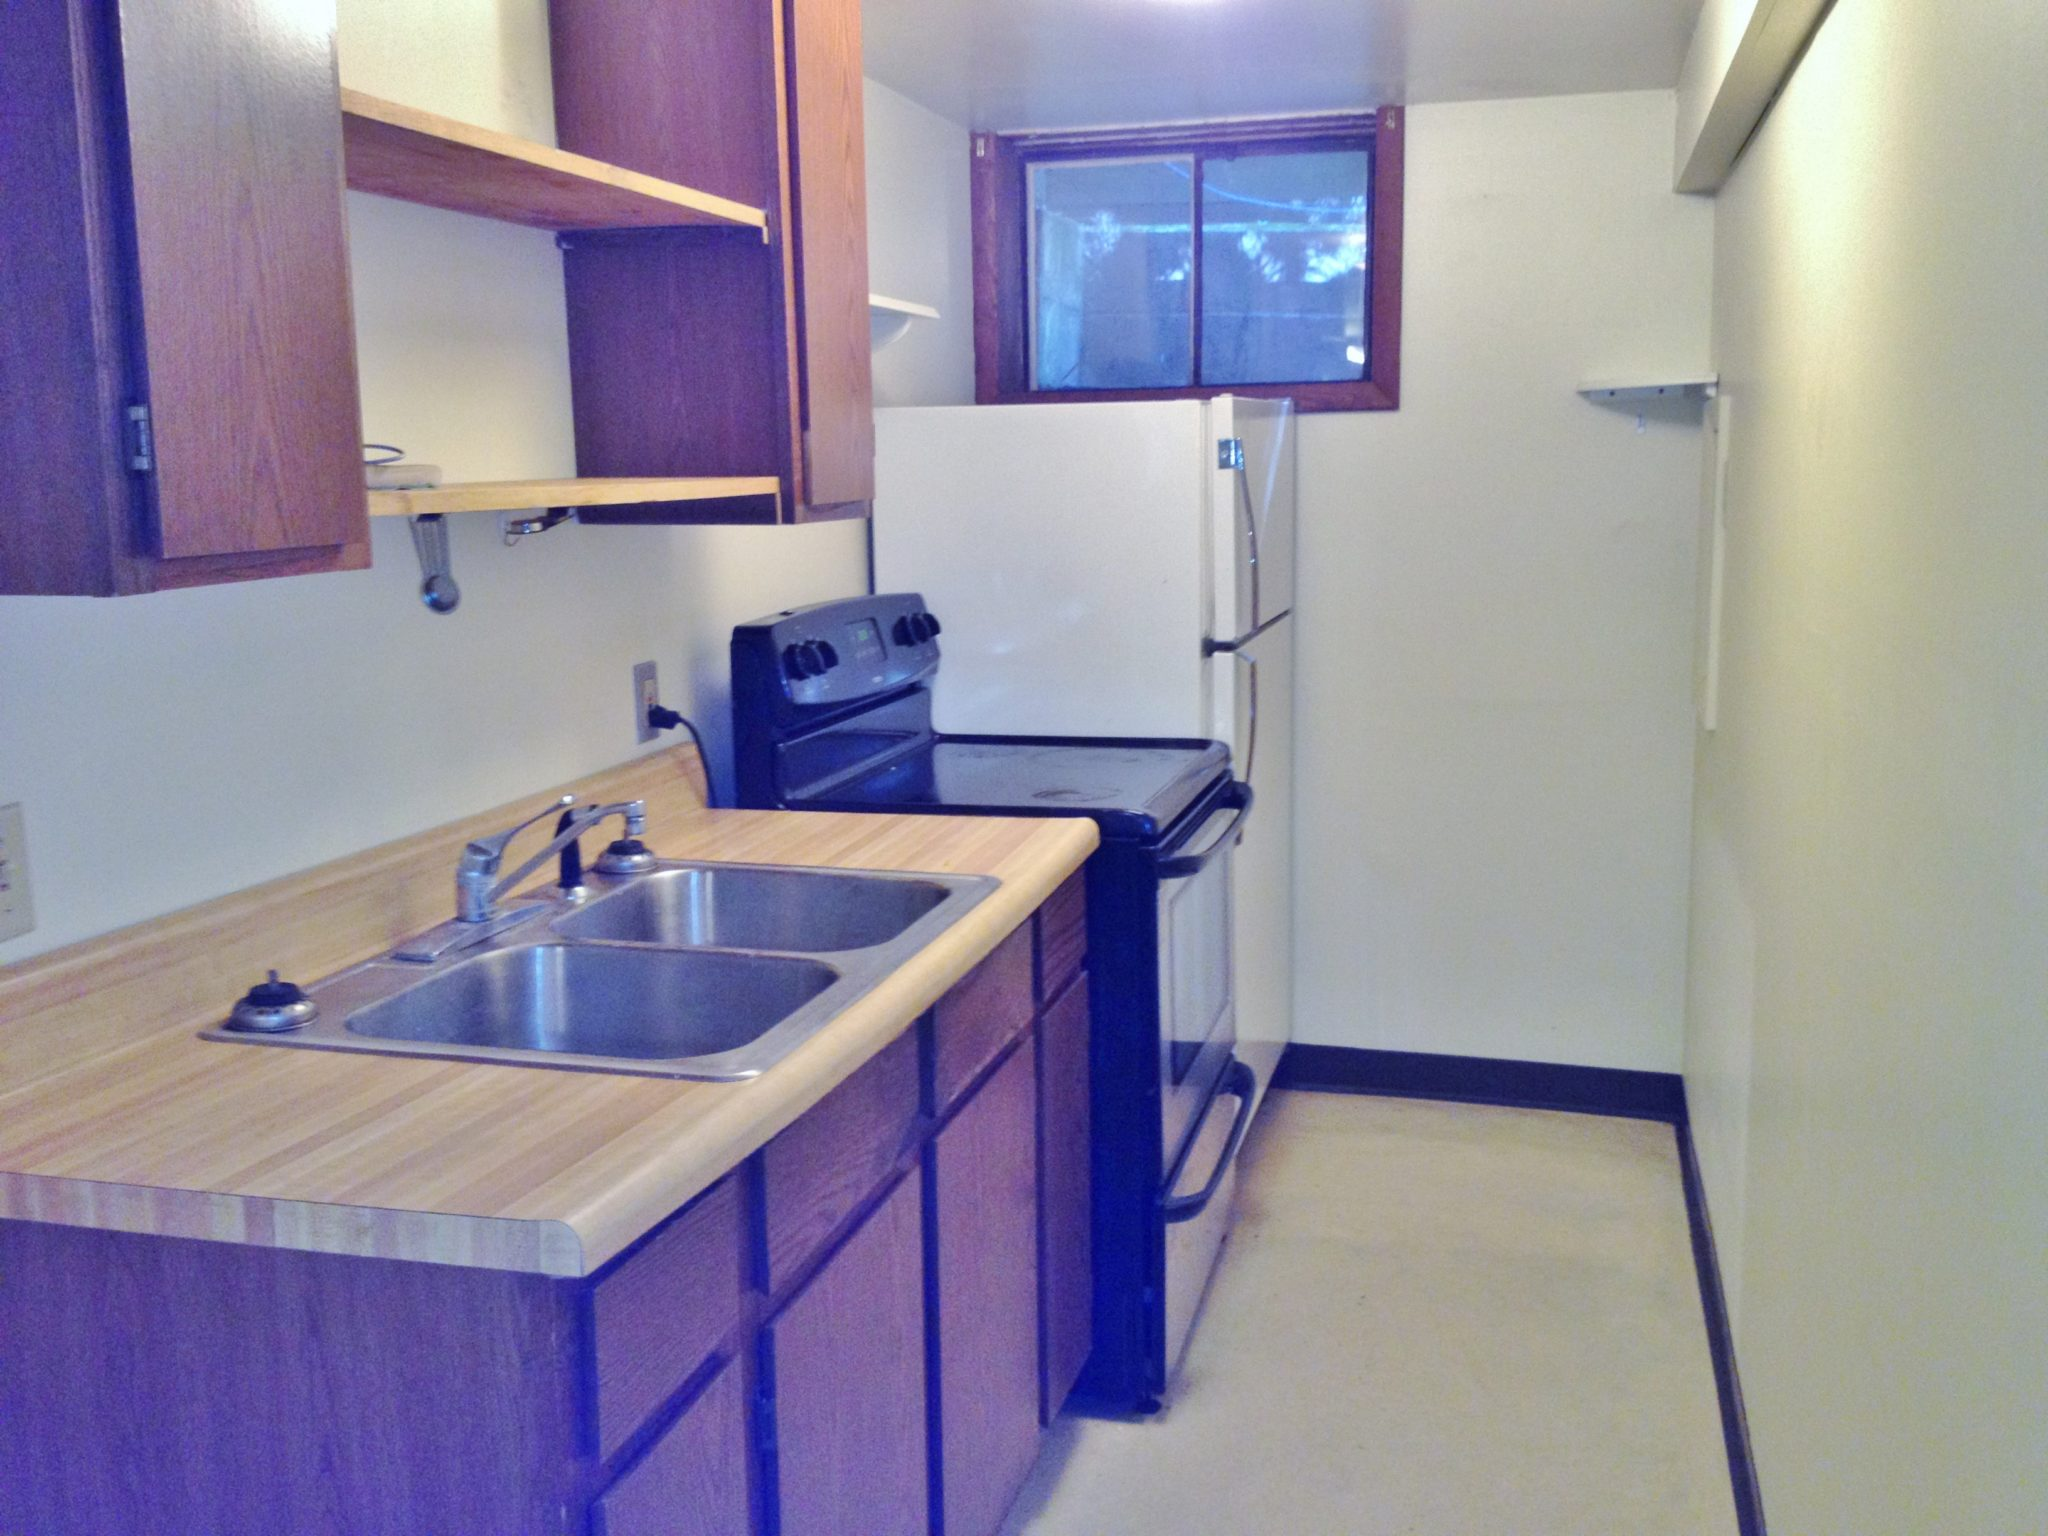 Kitchen photo for the EFFICIENCY apartment for rent at 466-B Martin Terrace, State College PA.